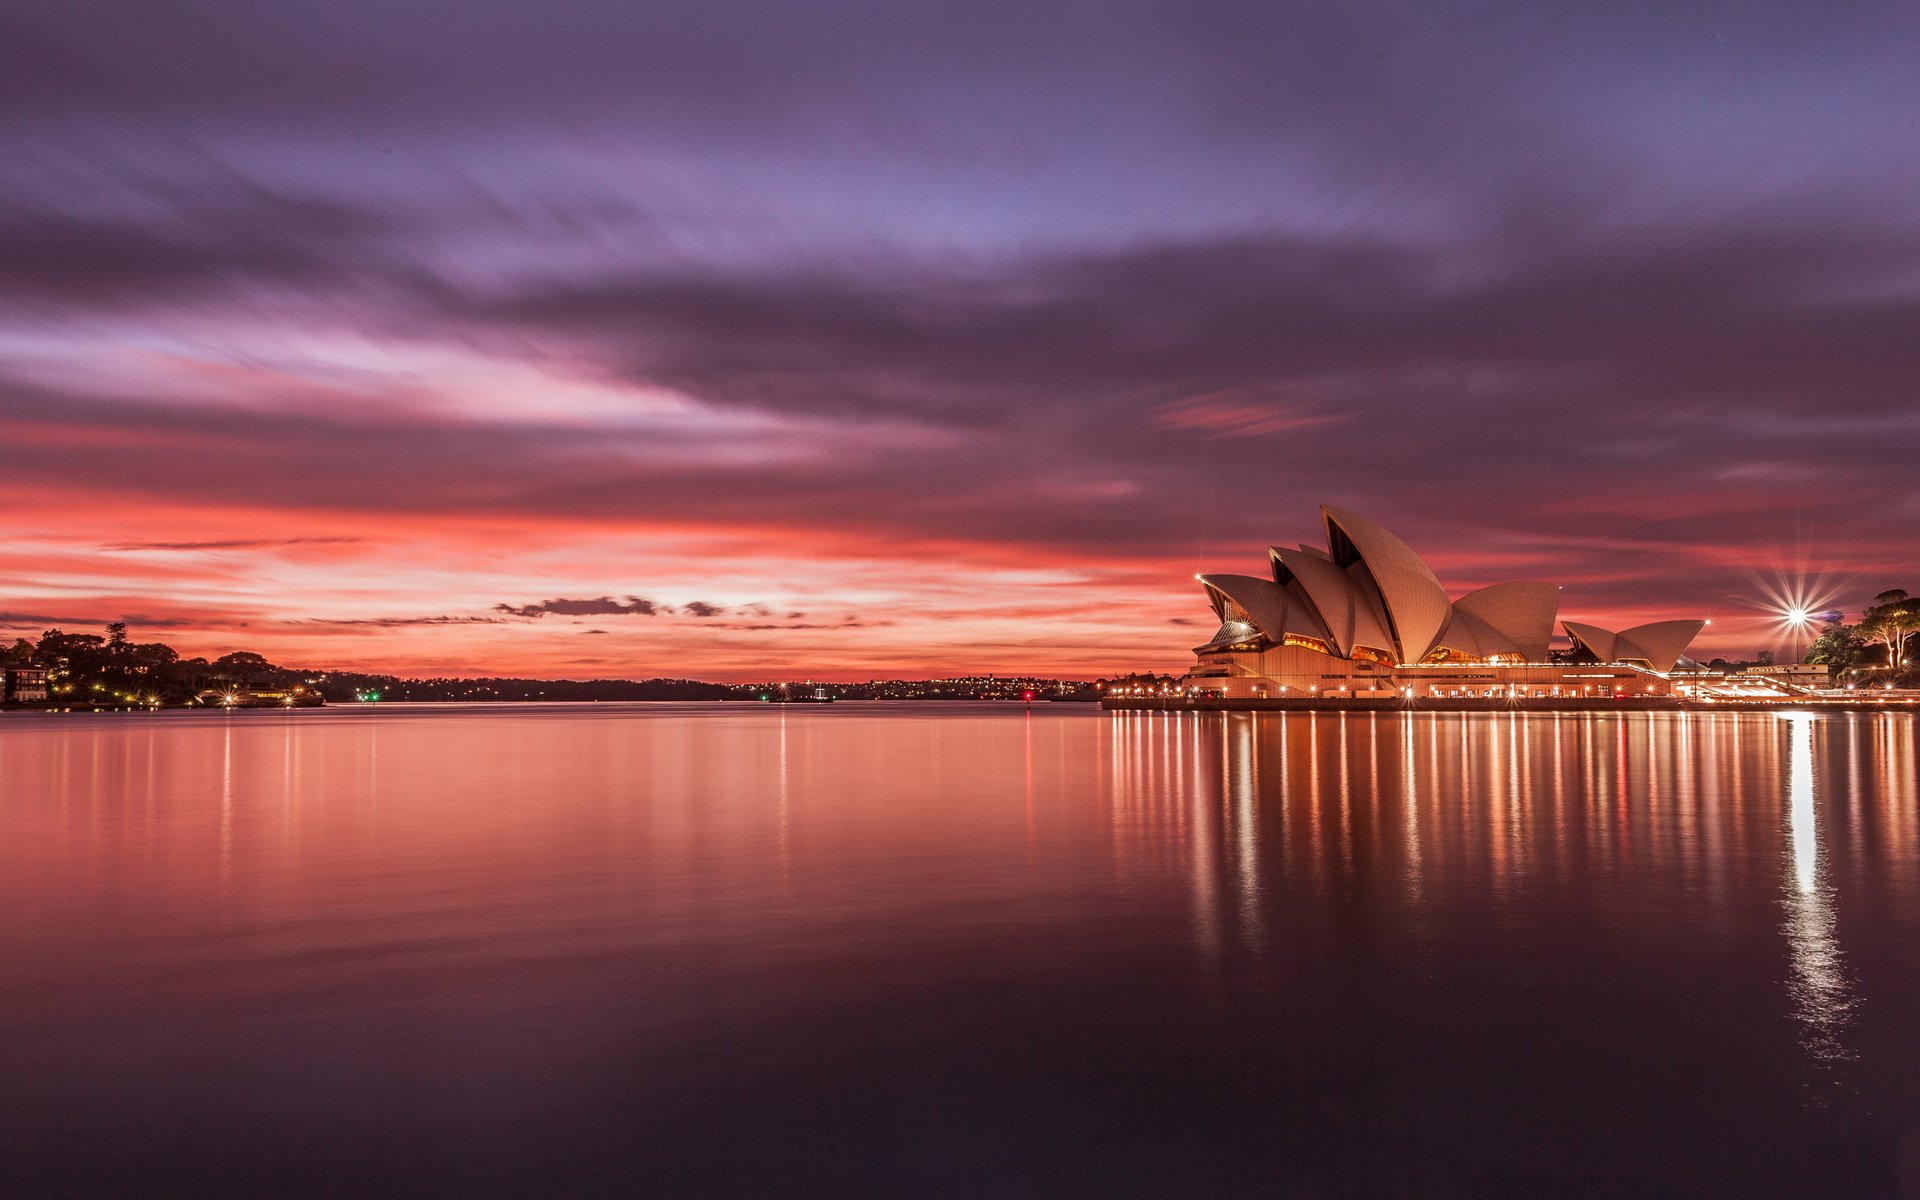 Australia wallpapers best wallpapers for Wallpaper home image